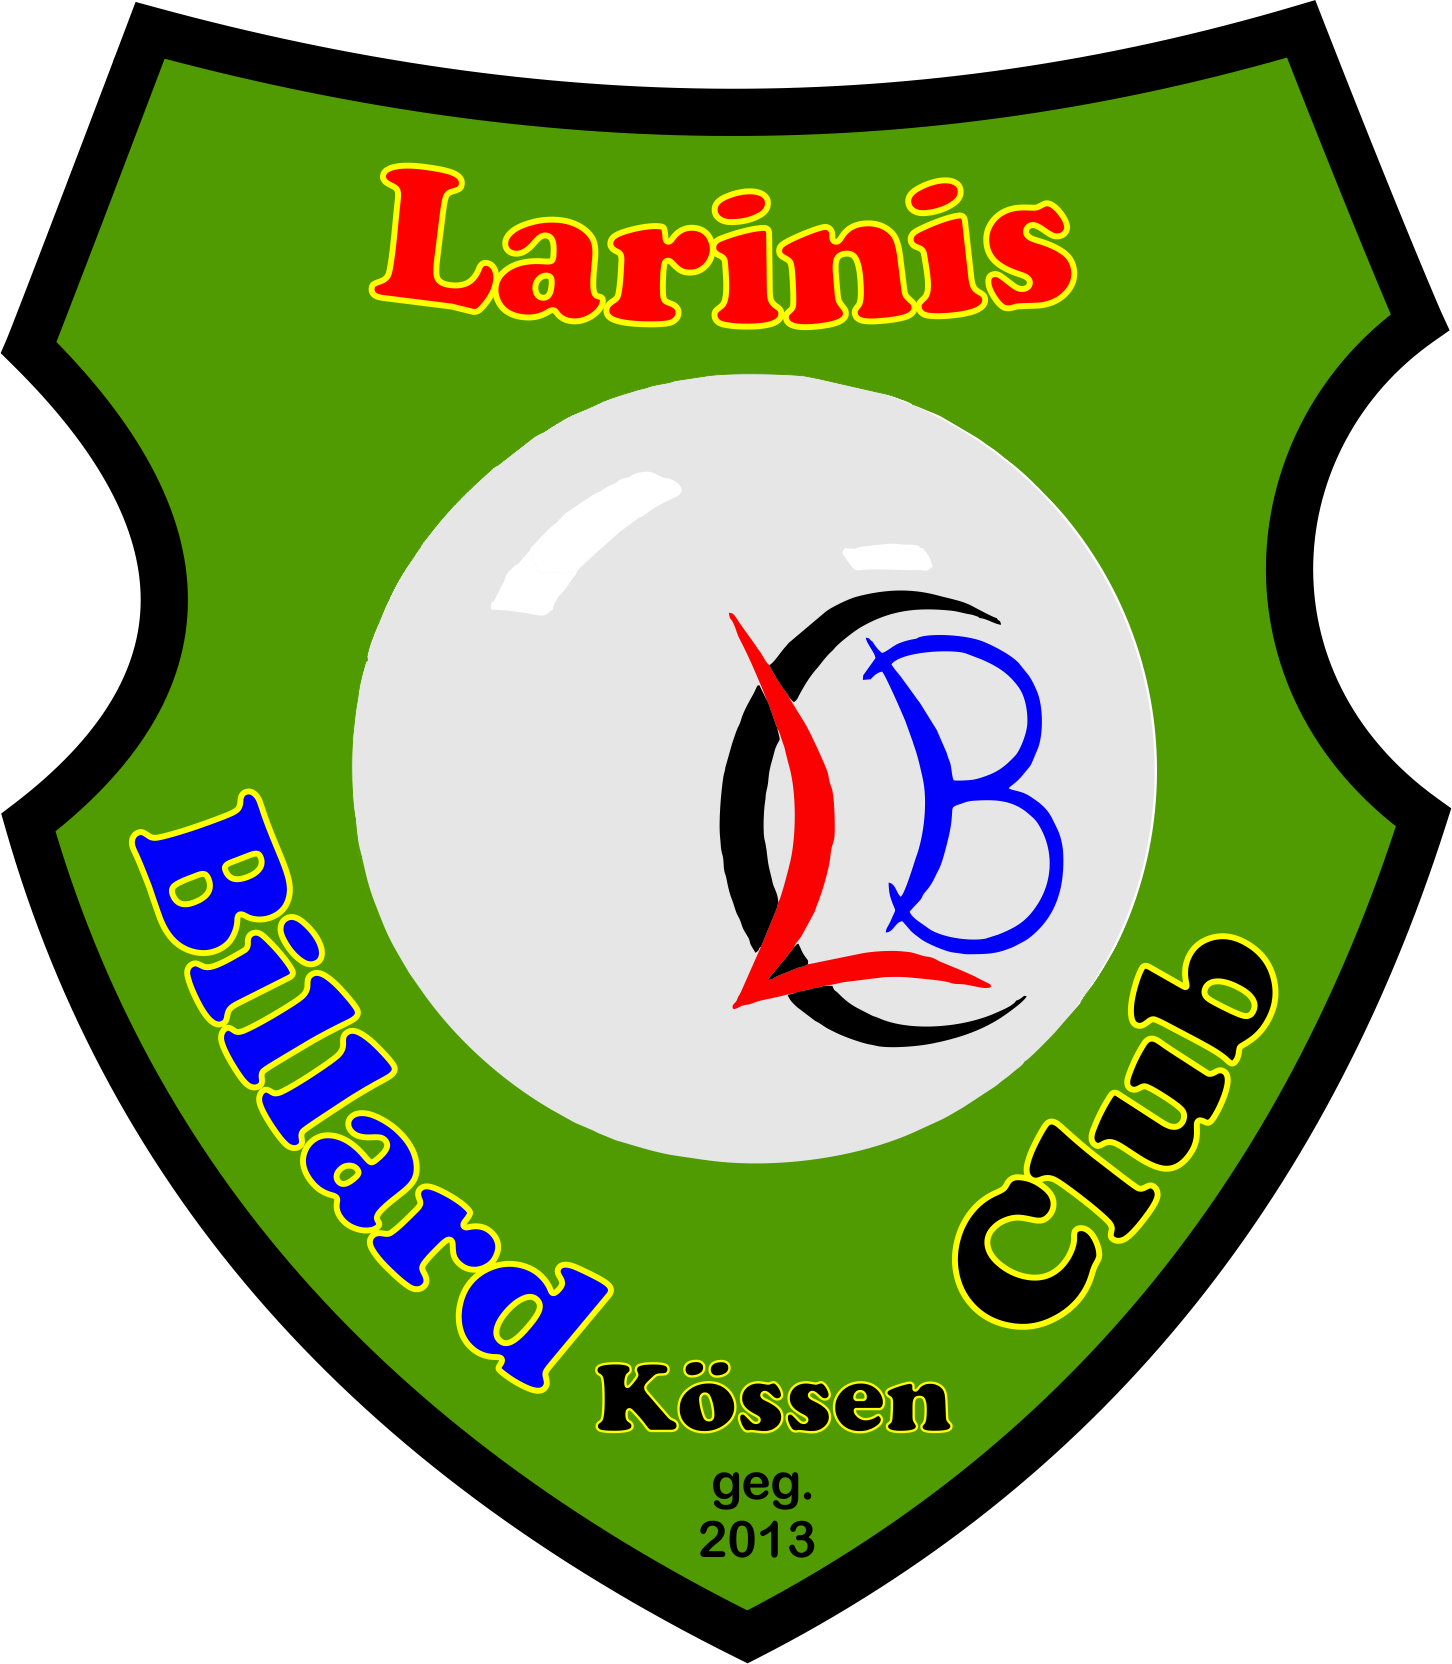 Larinis Billard Club